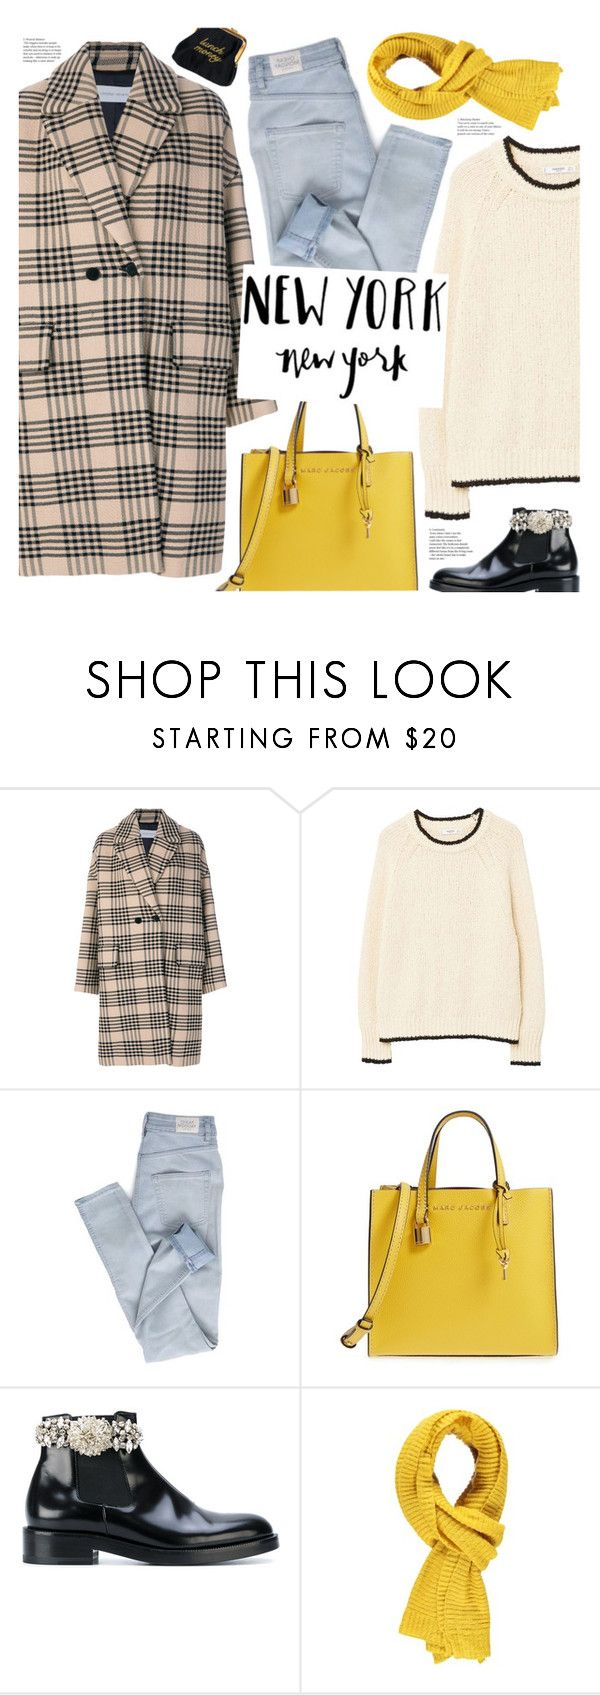 """""""new york, new york"""" by valentino-lover on Polyvore featuring Christian Wijnants, MANGO, Cheap Monday, Marc Jacobs, Christopher Kane and Forever 21"""